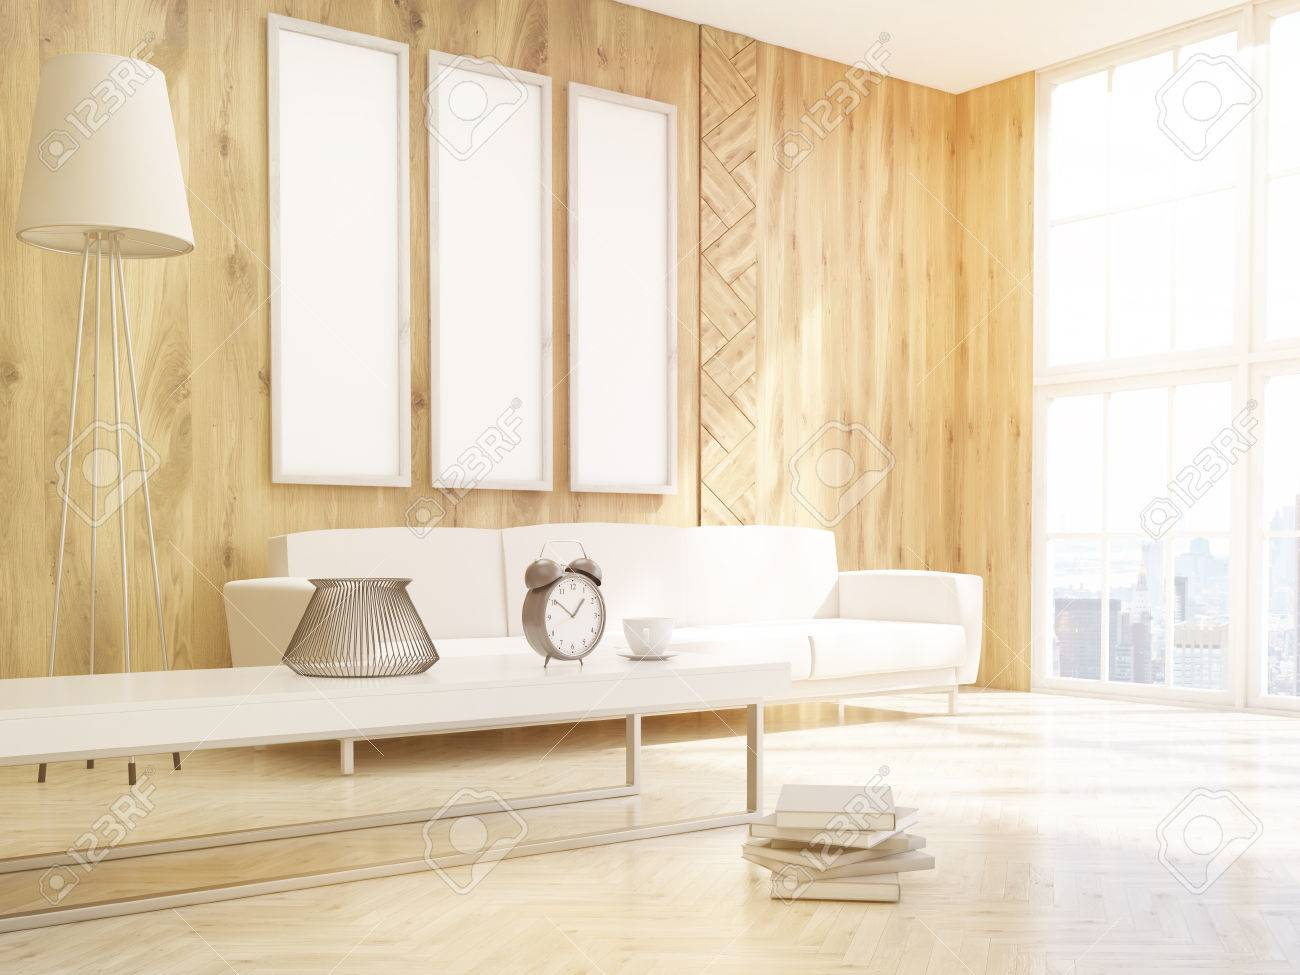 Three Vertical Frames On Wooden Wall Over Sofa, Standard Lamp ...